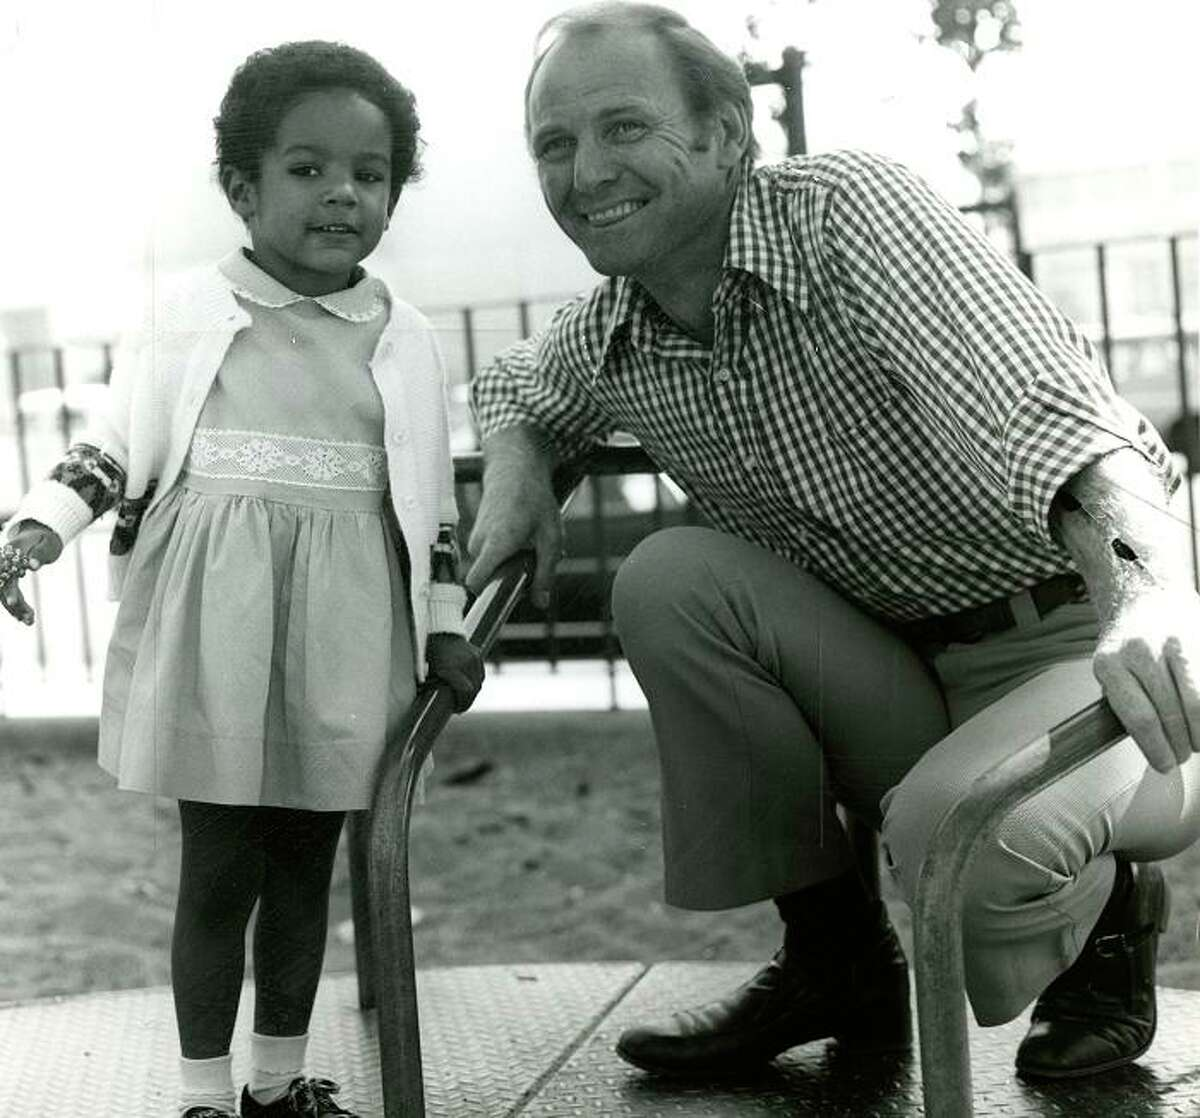 Bay Area television news legends PAT MCCORMICK (Nov. 3, 1974): McCormick told me in an interview that he was happiest doing Charley and Humphrey. So I wasn't surprised to see the KTVU personality really light up for this photo, where he's promoting an adopt-a-child program.